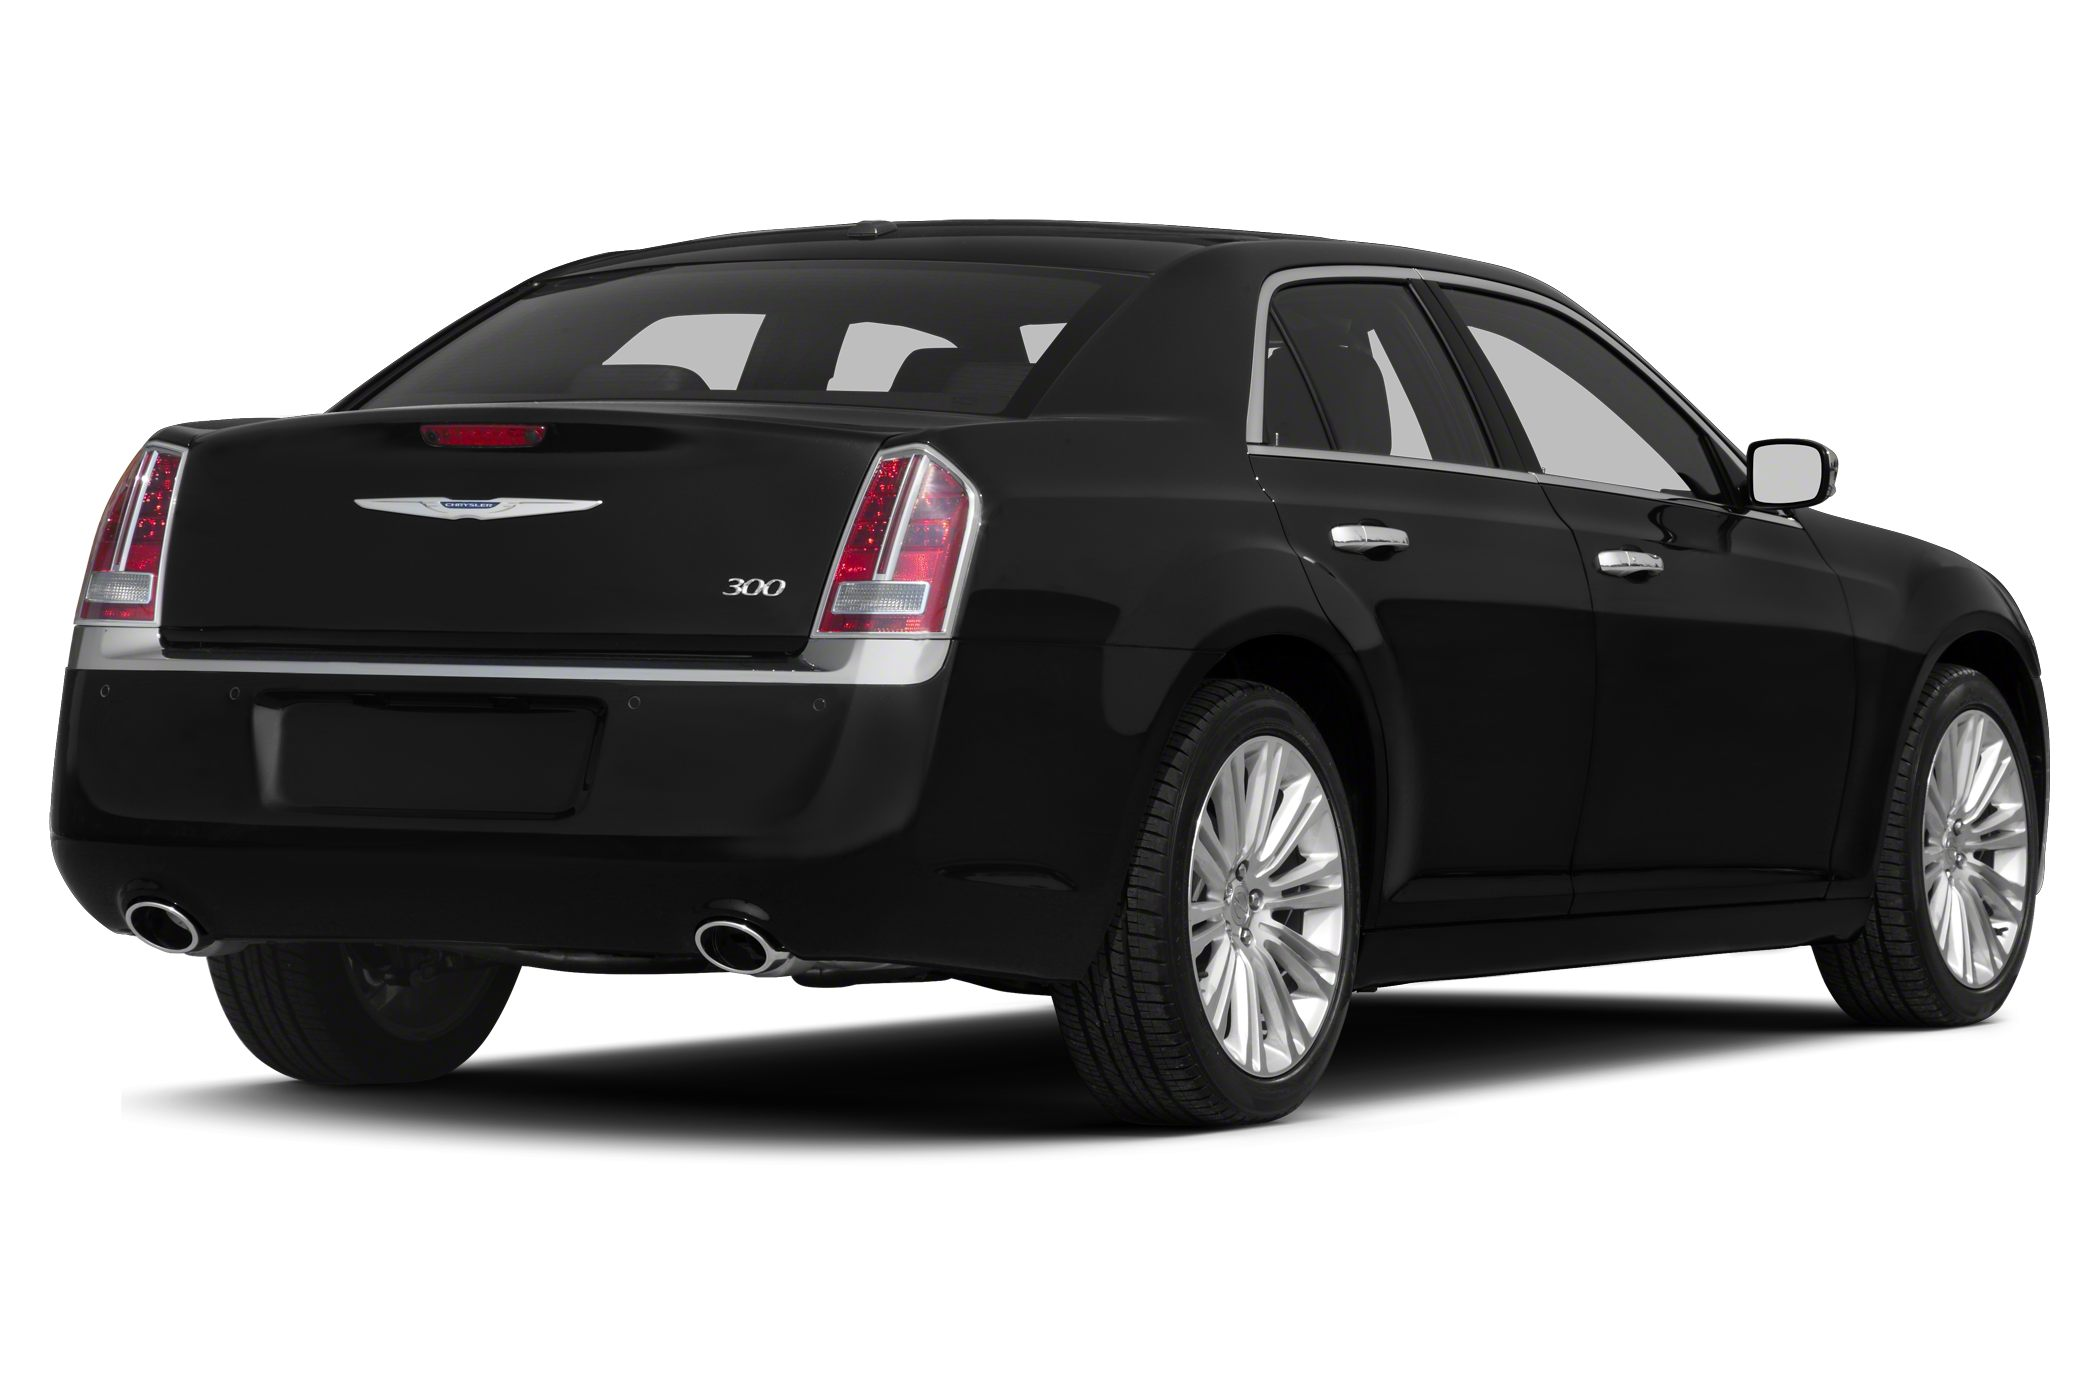 2013 Chrysler 300 Base WHENIT COMES TO EXCELLENCE IN USED CAR SALES YOU KNOW YOU Miles 29770C